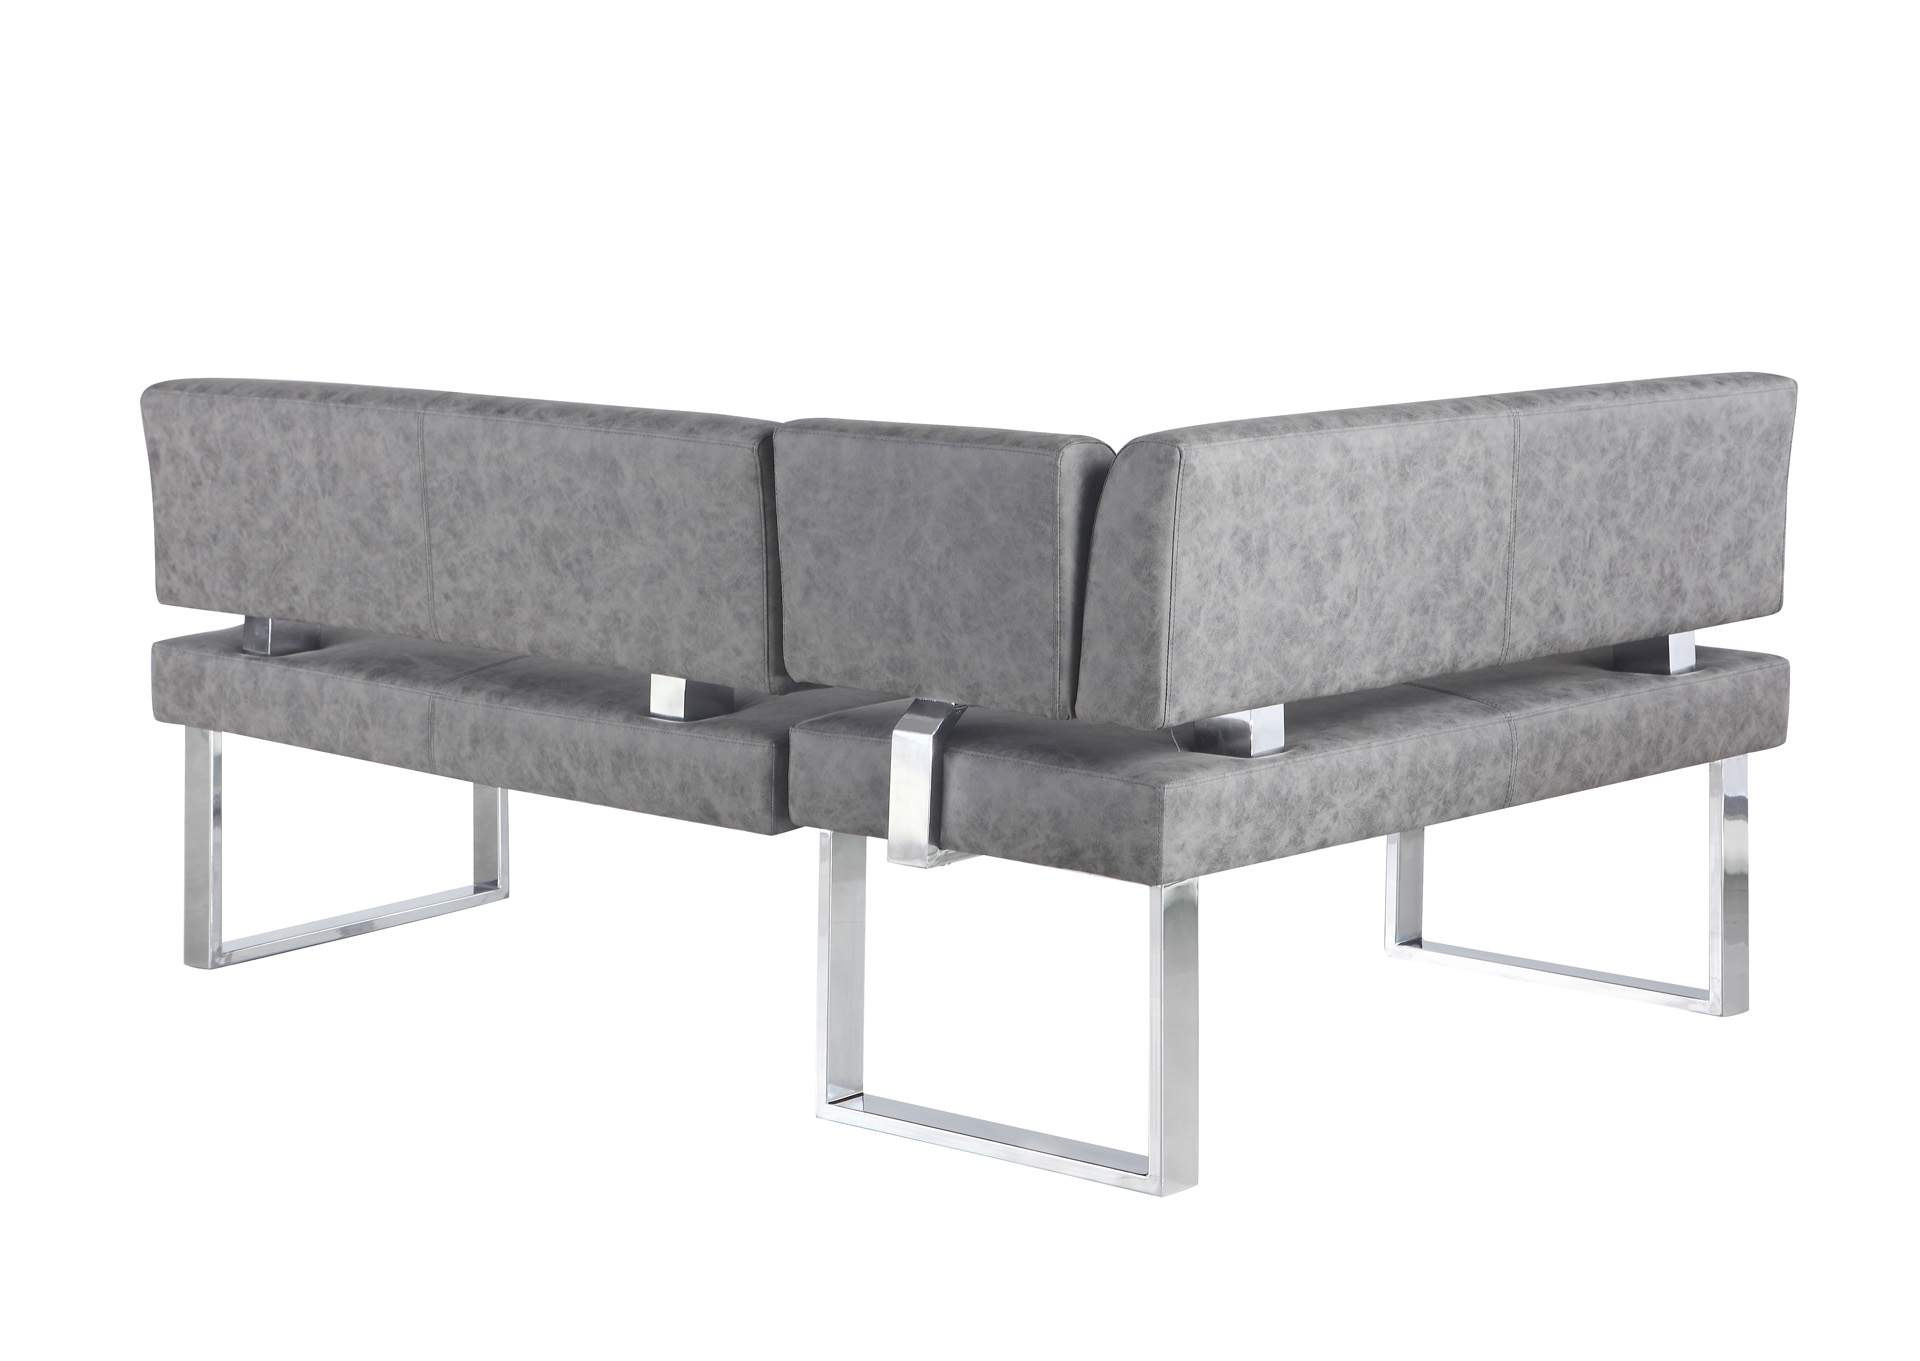 Genevieve Grey Gray Upholstered Bench,Chintaly Imports